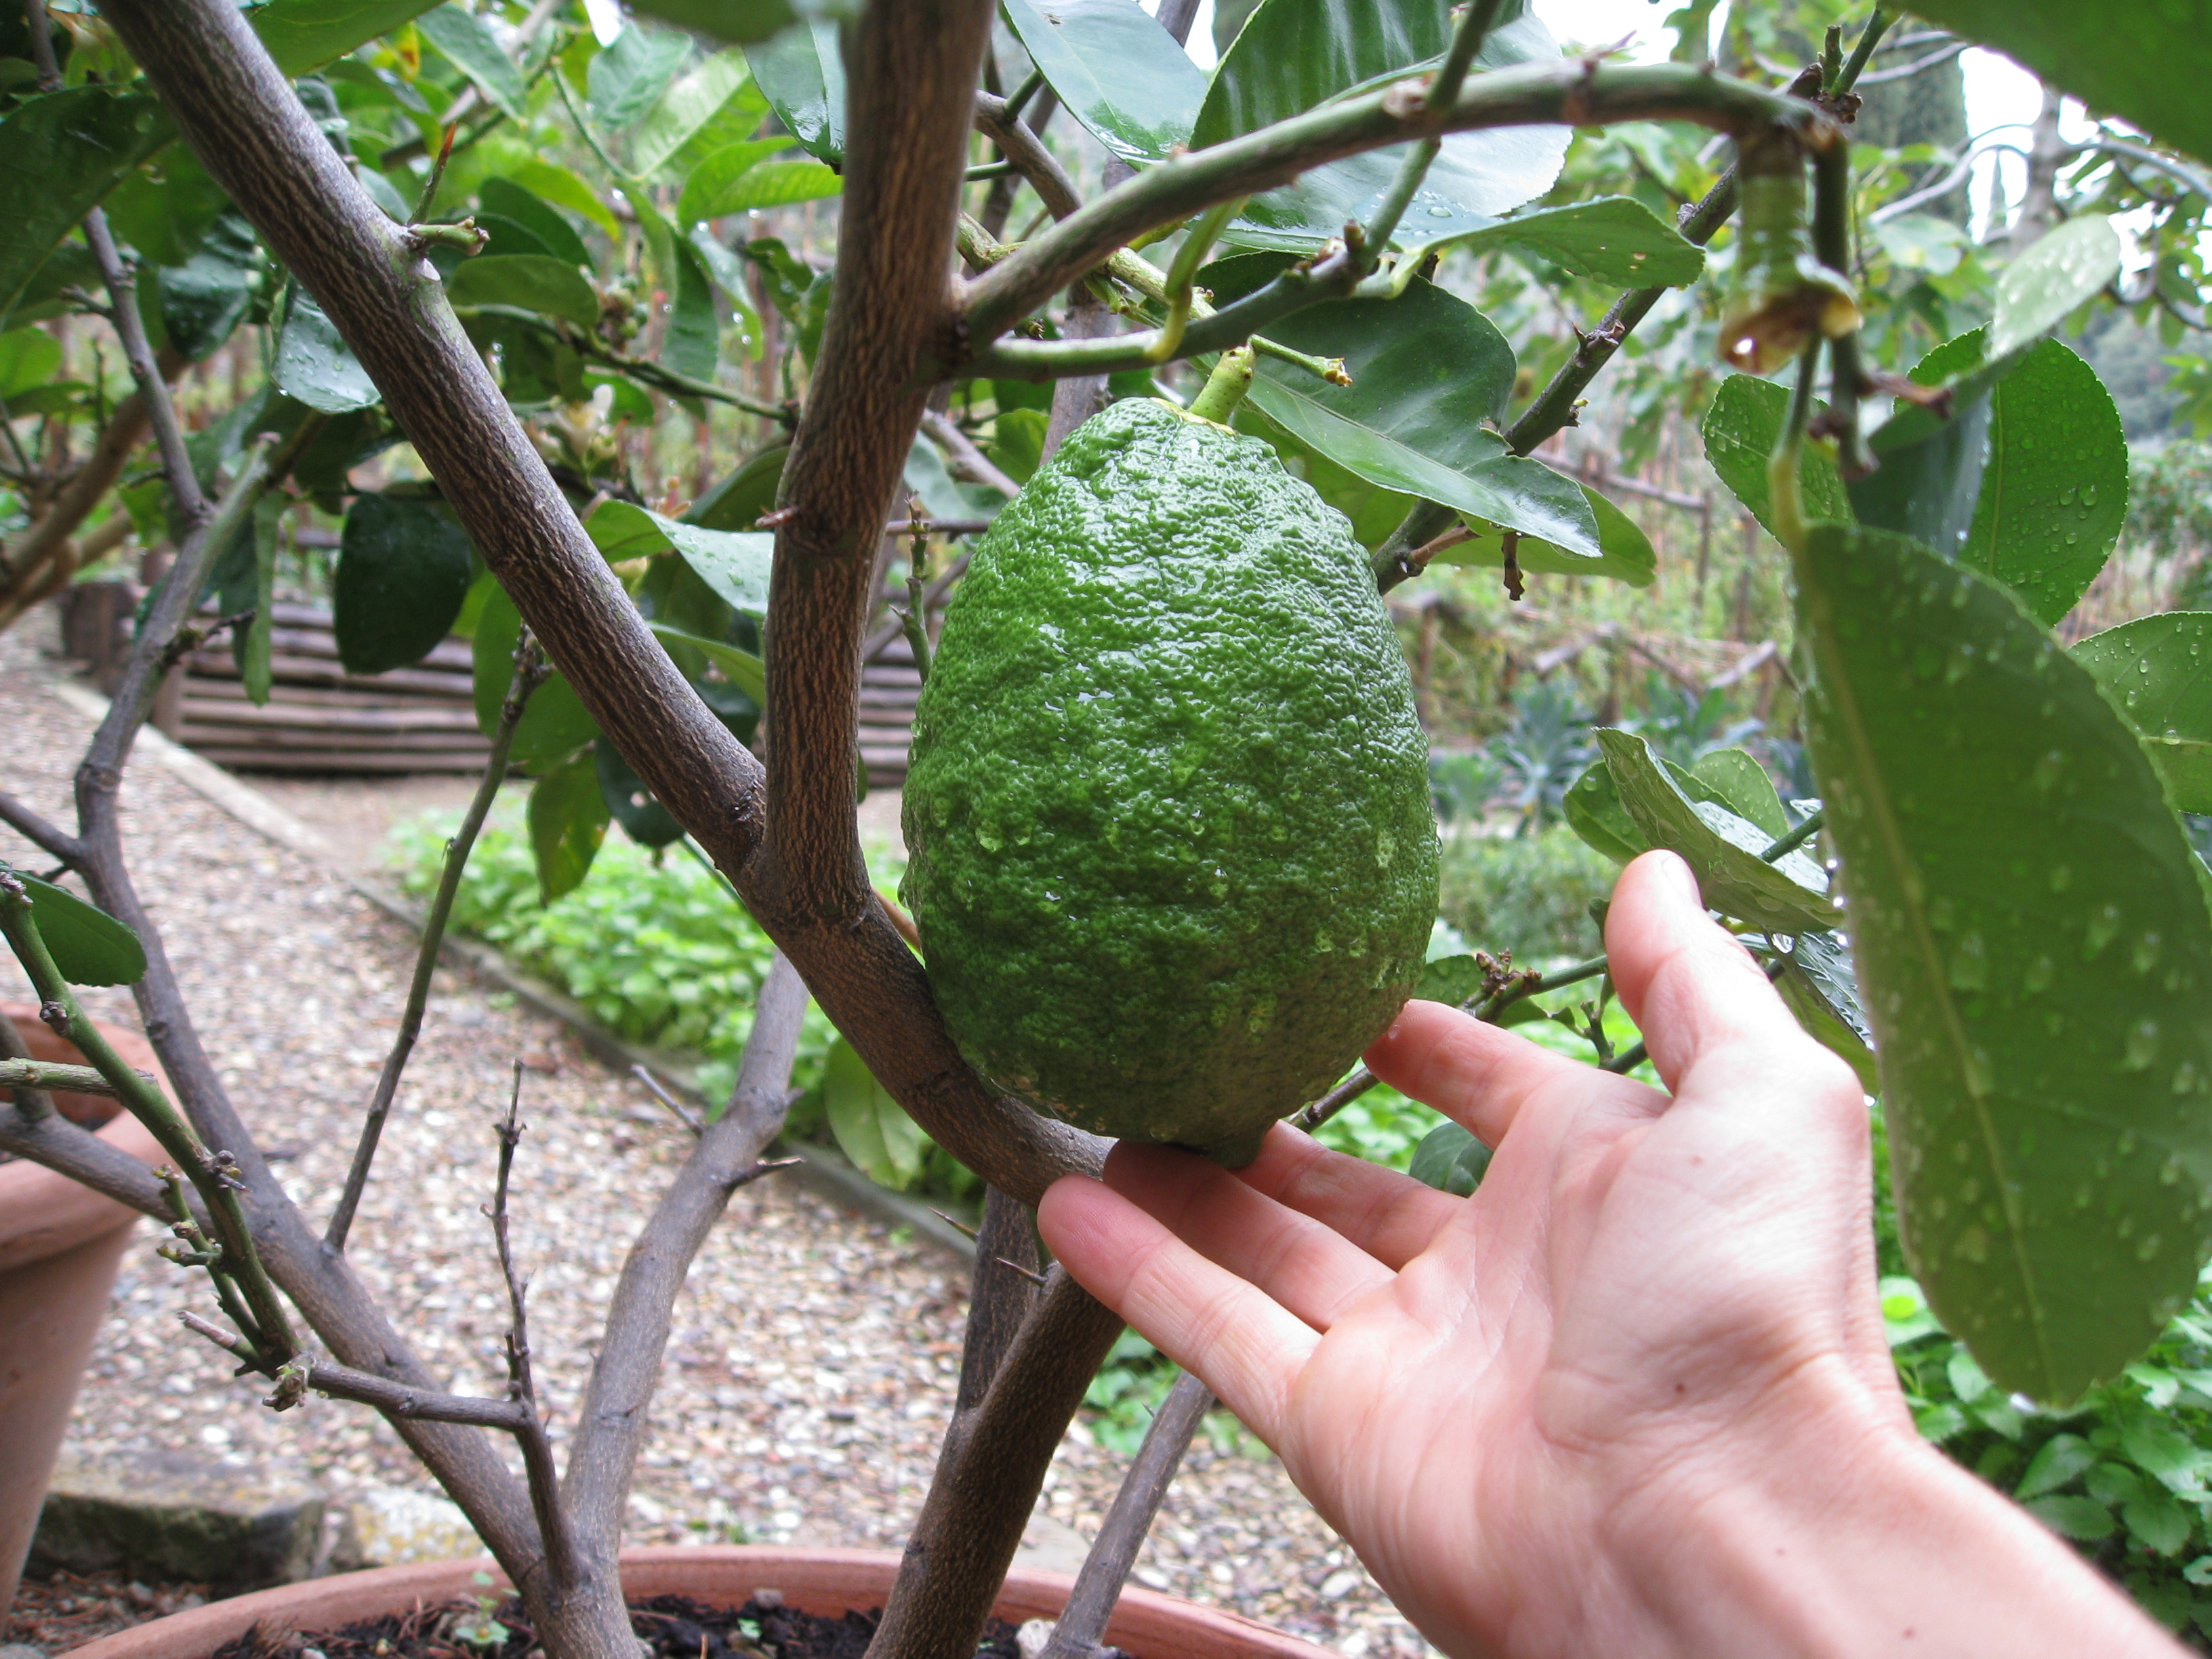 Citron is a popular fruit in Italy. We found a tree in a terra cotta pot near the entrance.